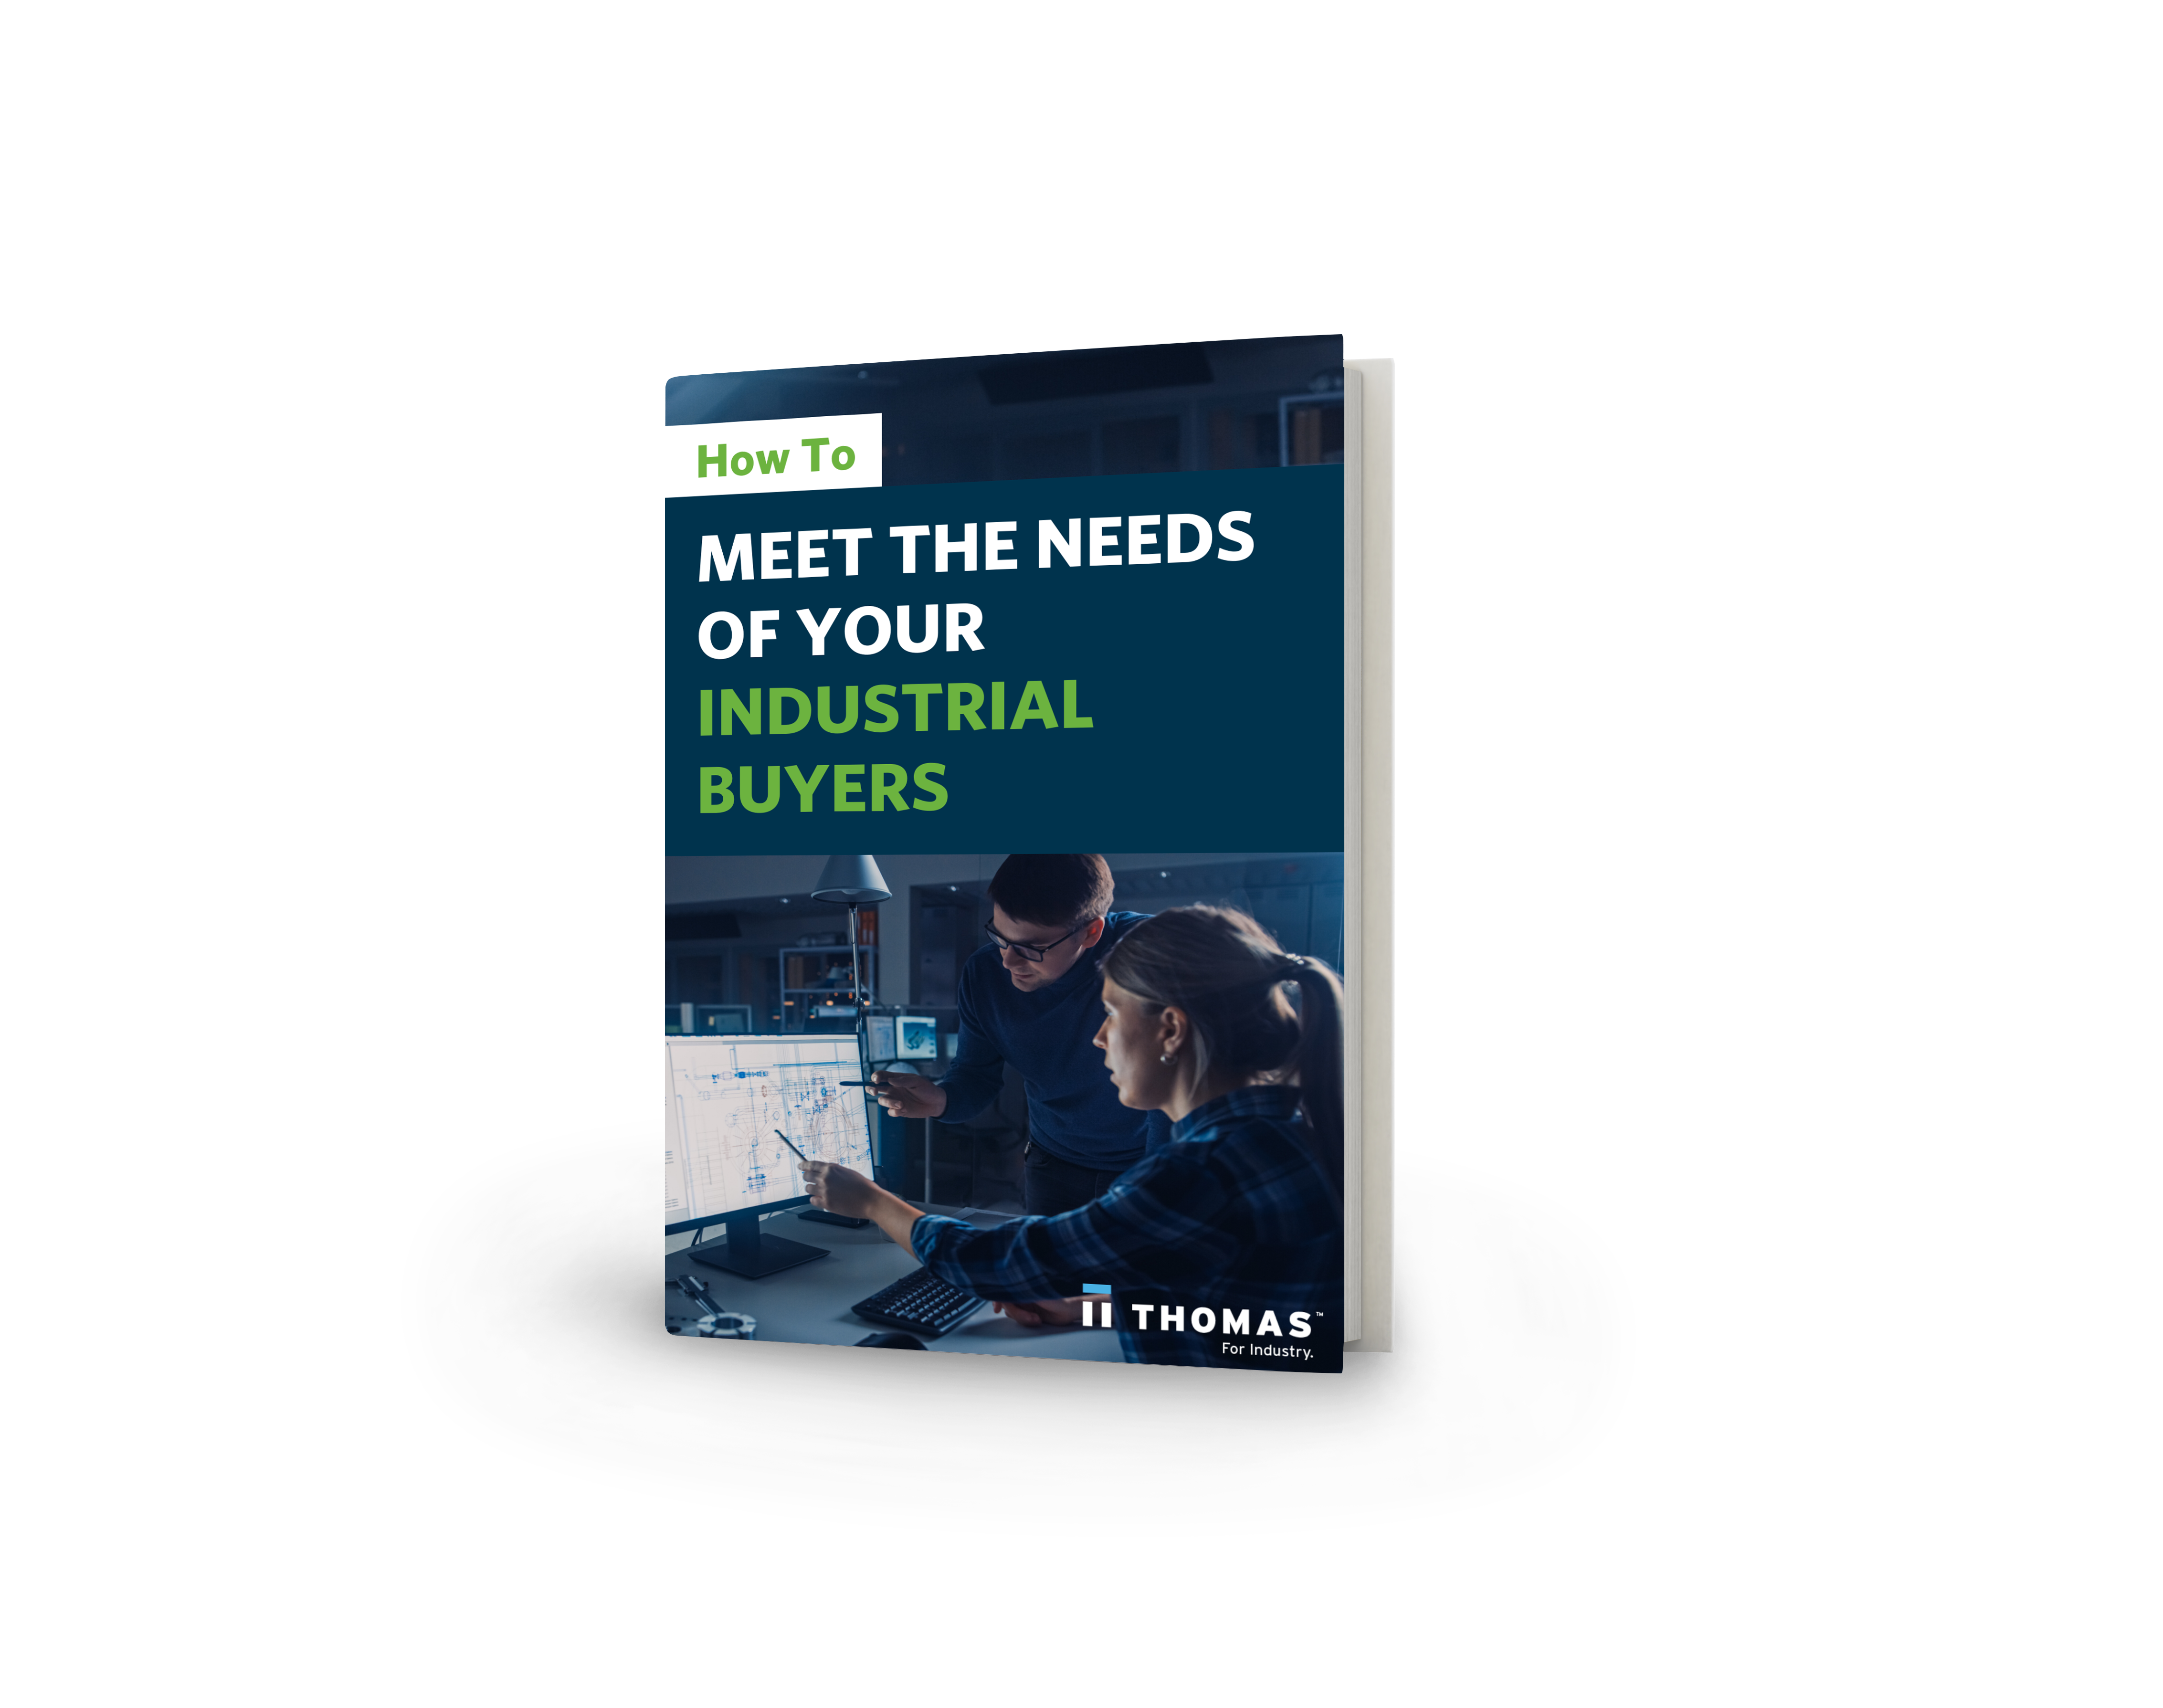 How To Meet The Needs Of Your Buyers